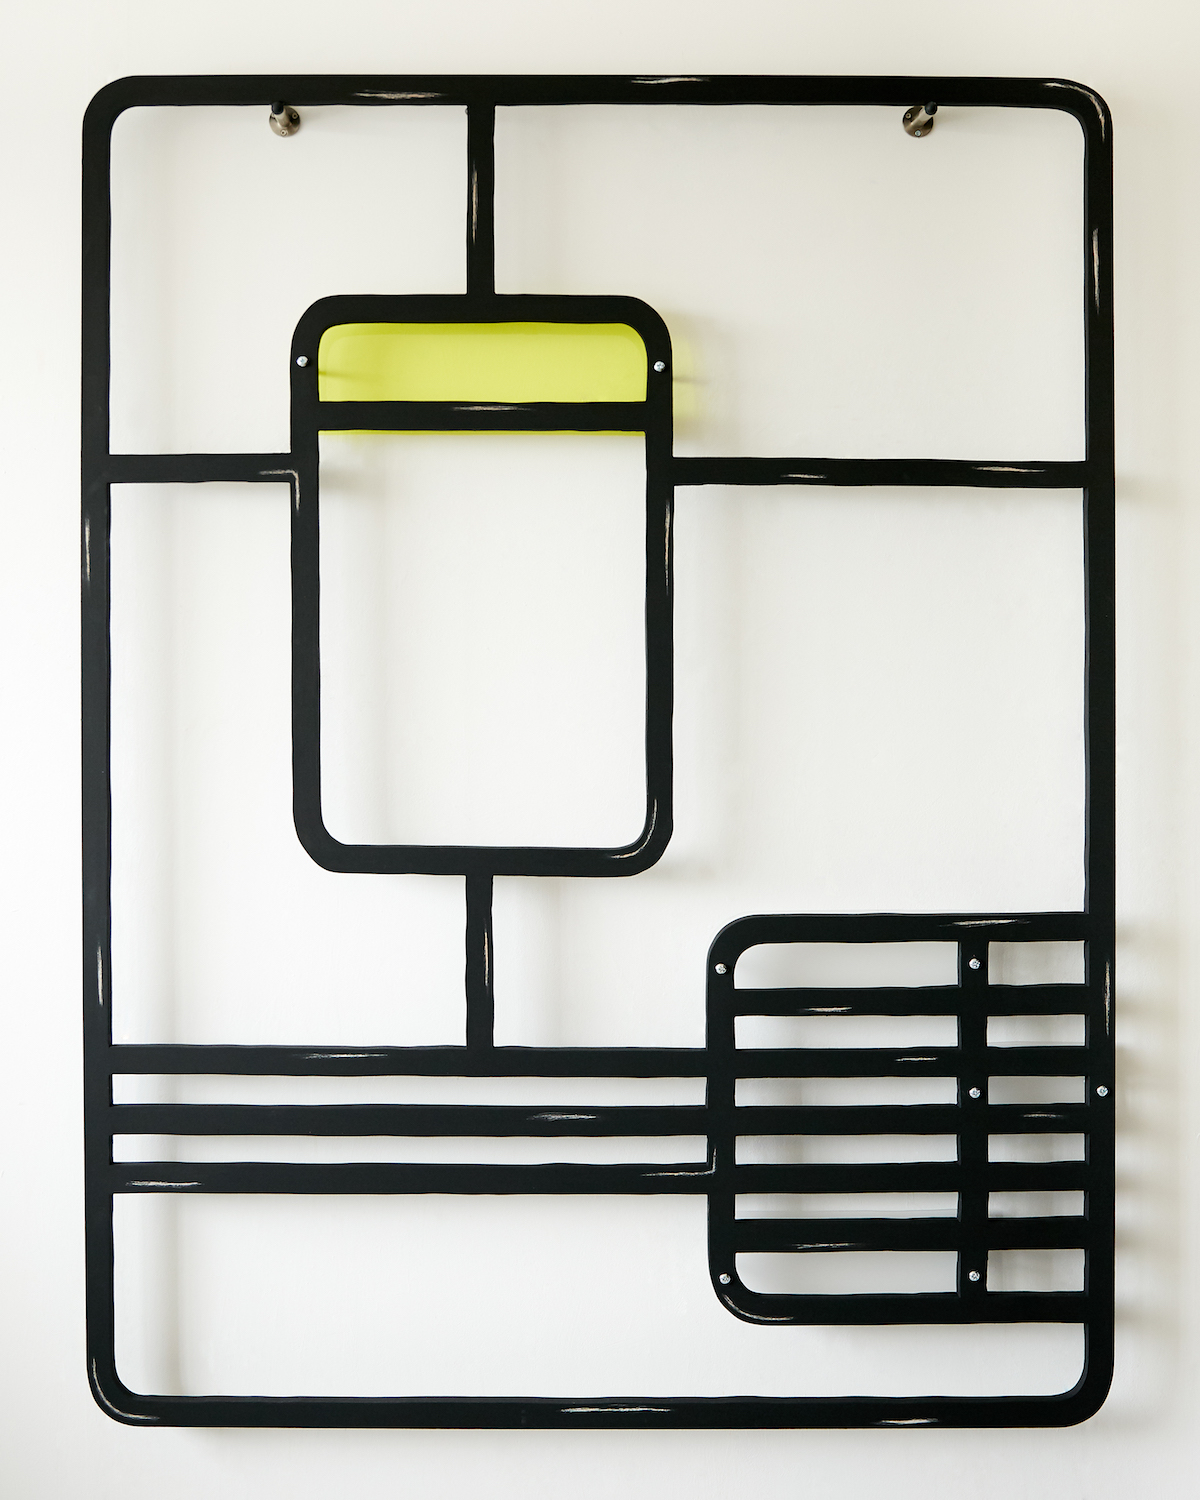 Milly Peck, Alight I, 2020. Emulsion on wood, perspex, coloured pencil, bolts. 161 x 122 x 7 cm.